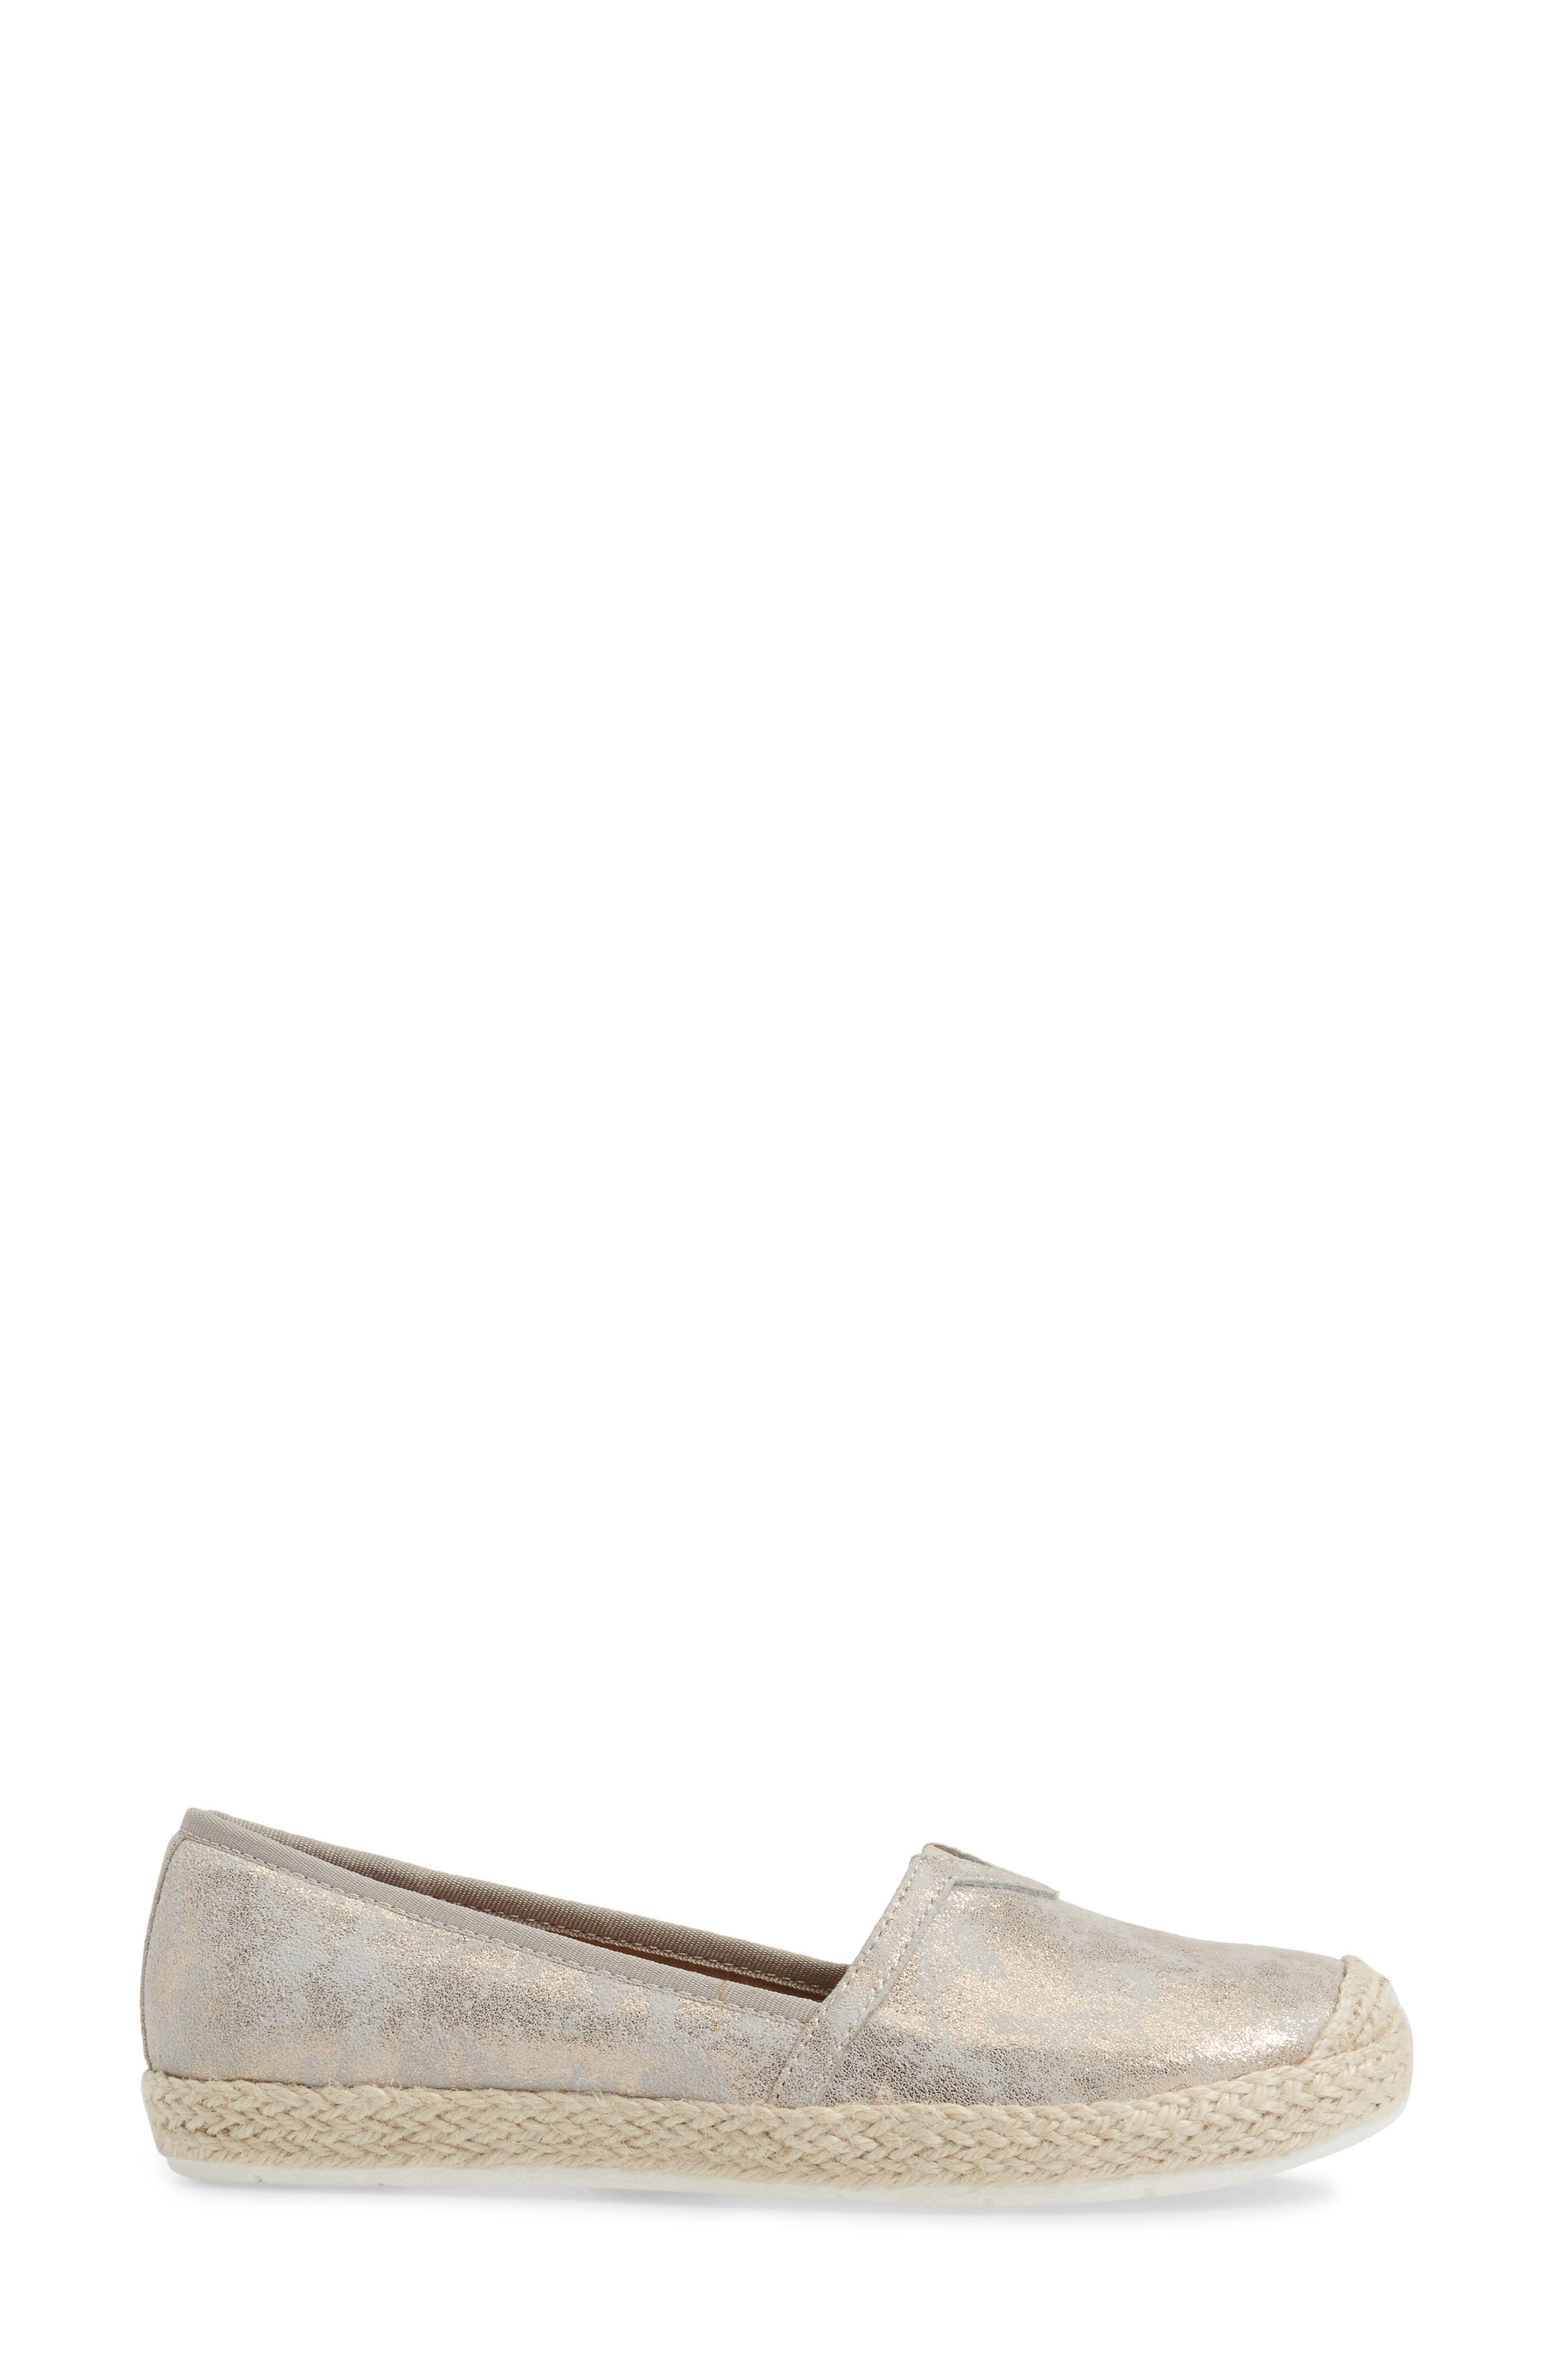 Sheridan Espadrille Flat,                             Alternate thumbnail 3, color,                             IVORY SUEDE